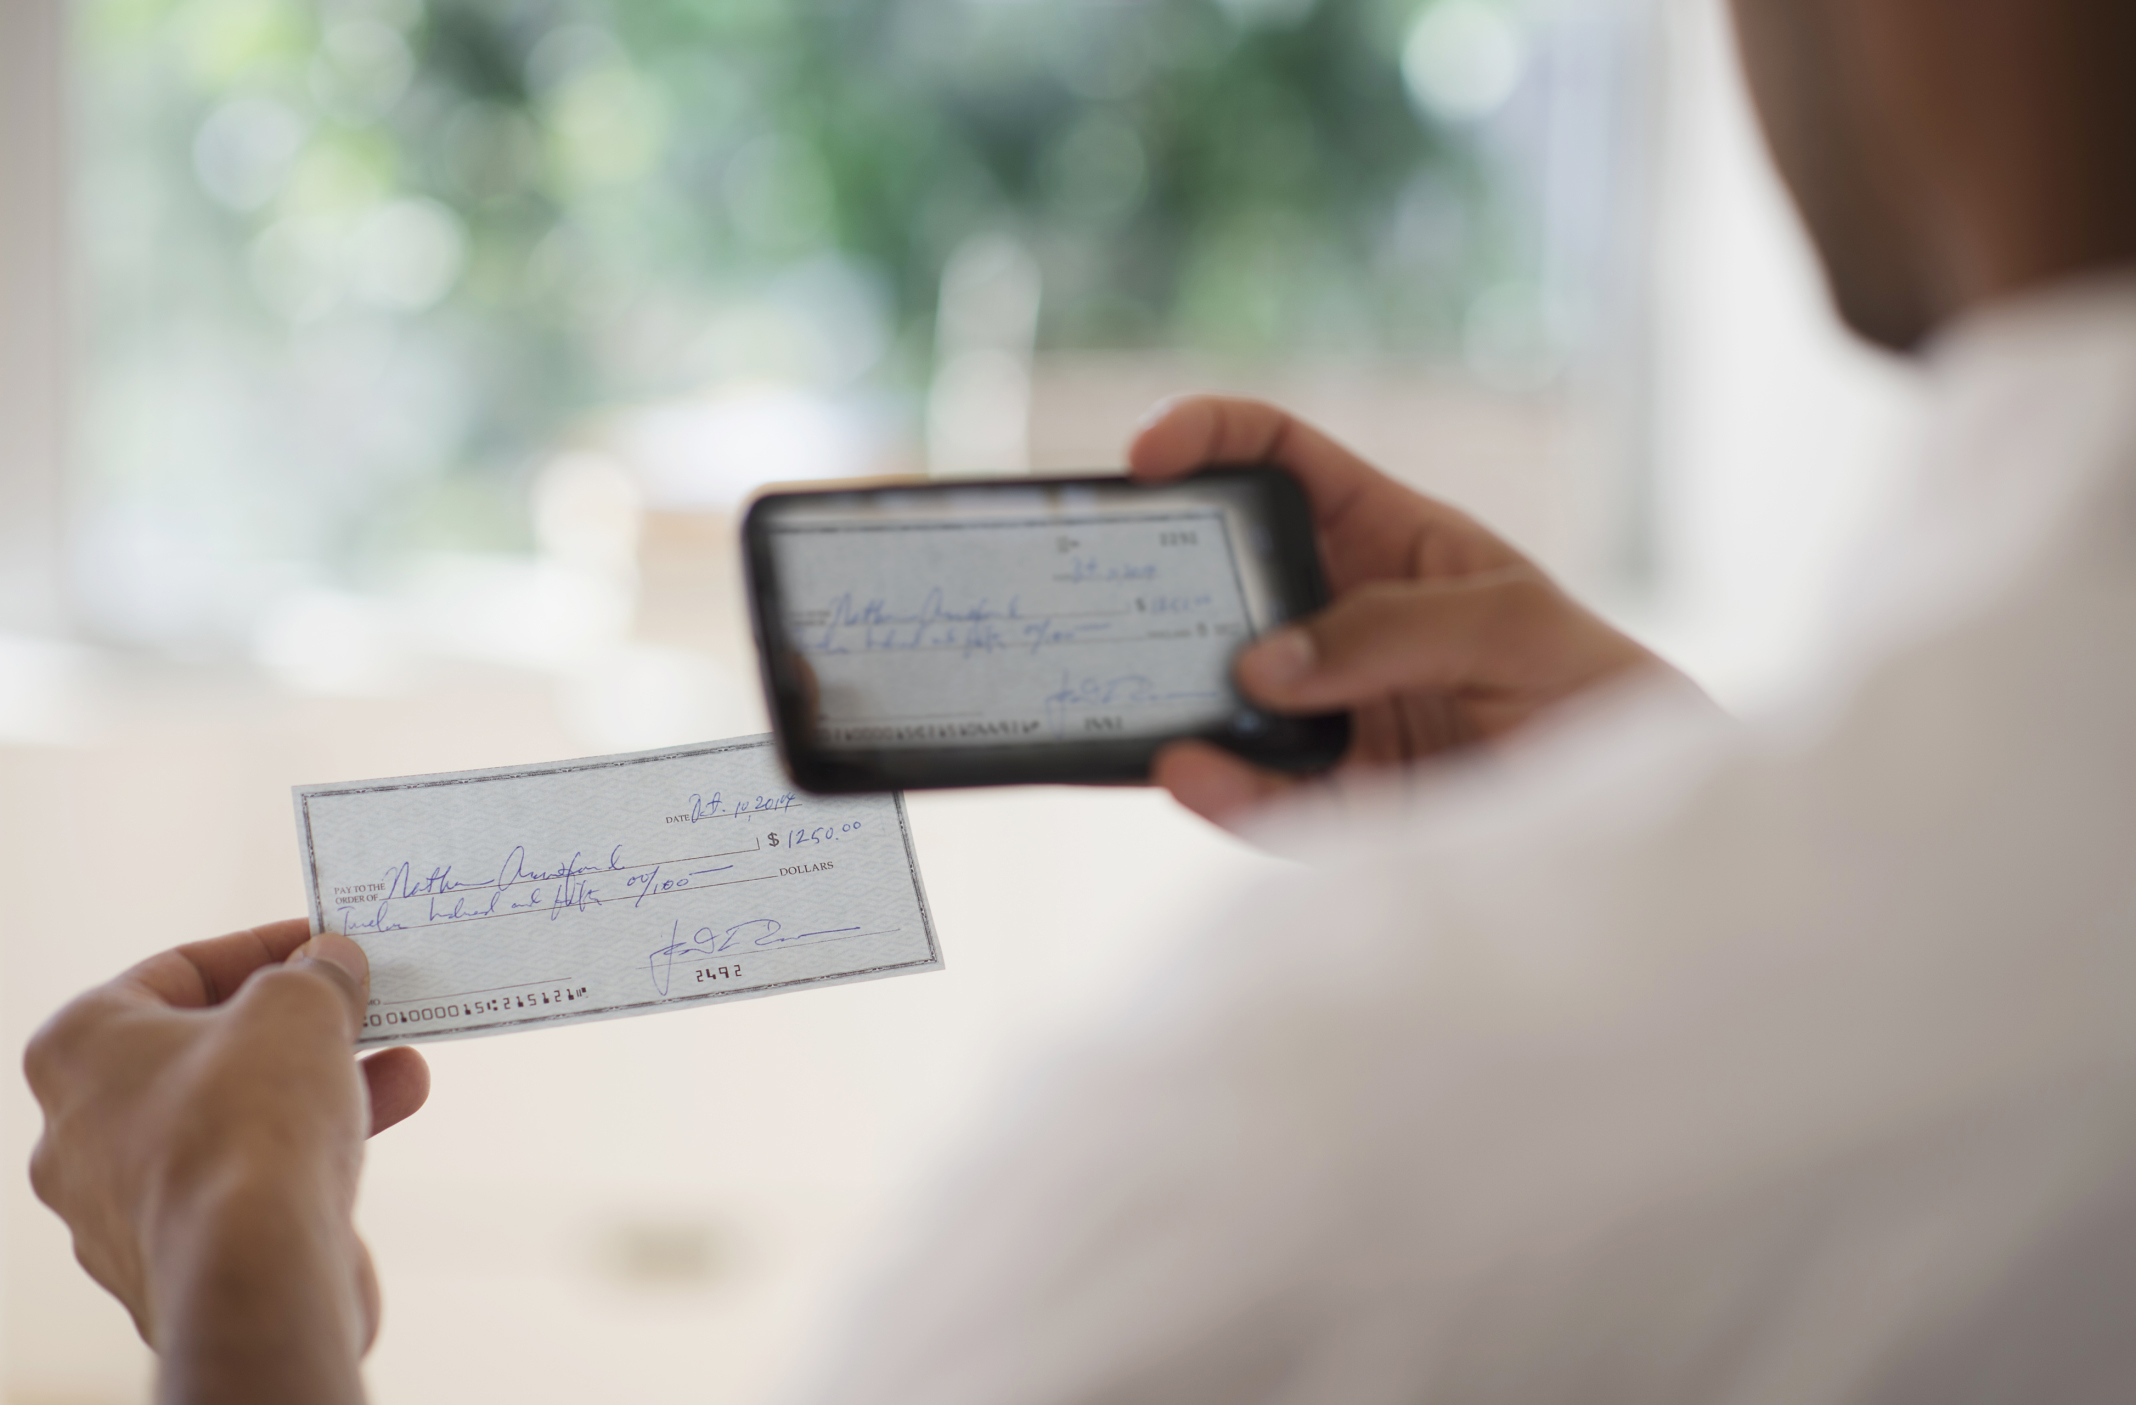 security threats of mobile banking The top 5 cyber security threats to future of mobile banking breach prevention july 24, 2012 by ofonseca as mobile banking grows in popularity, so do the dangers of data breach and identity theft.